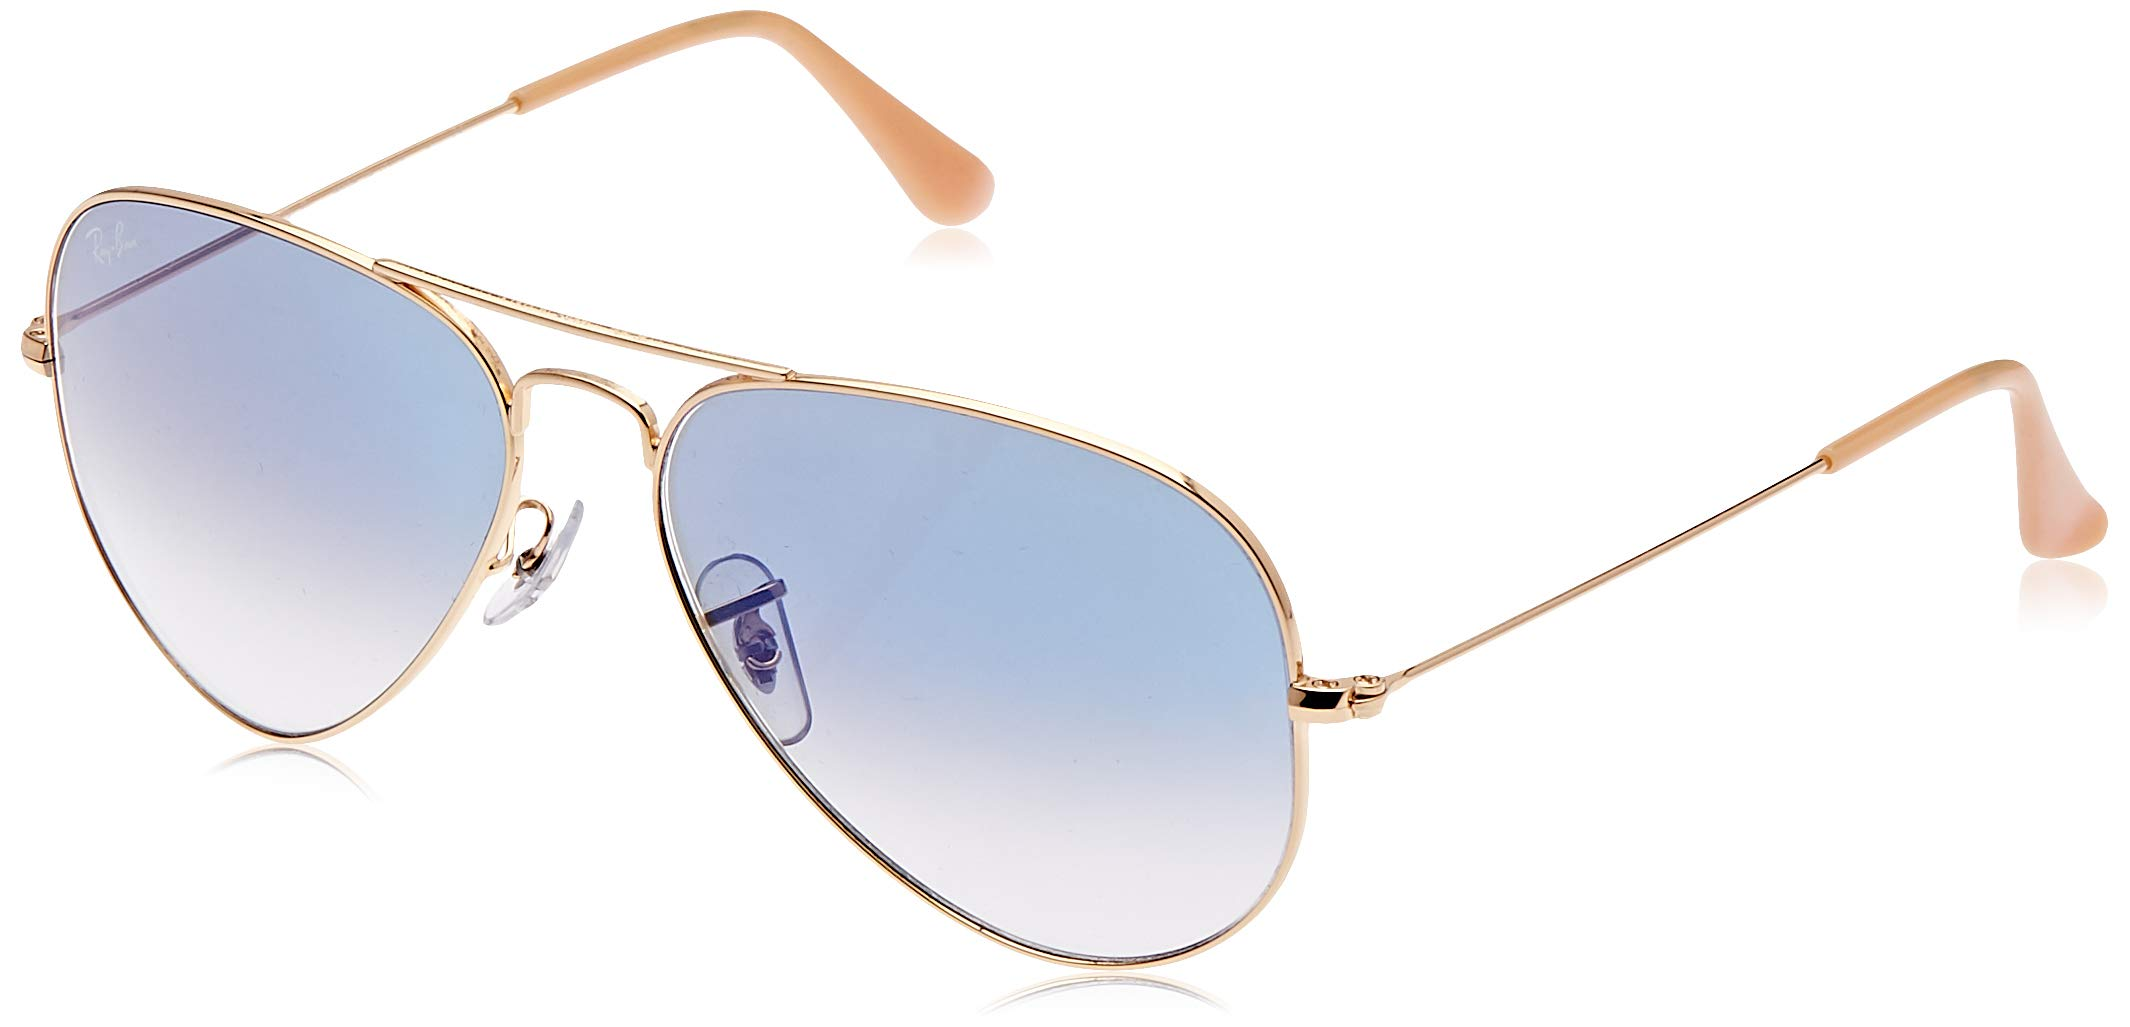 RAY-BAN RB3025 Aviator Large Metal Sunglasses, Gold/Blue Gradient, 55 mm by RAY-BAN